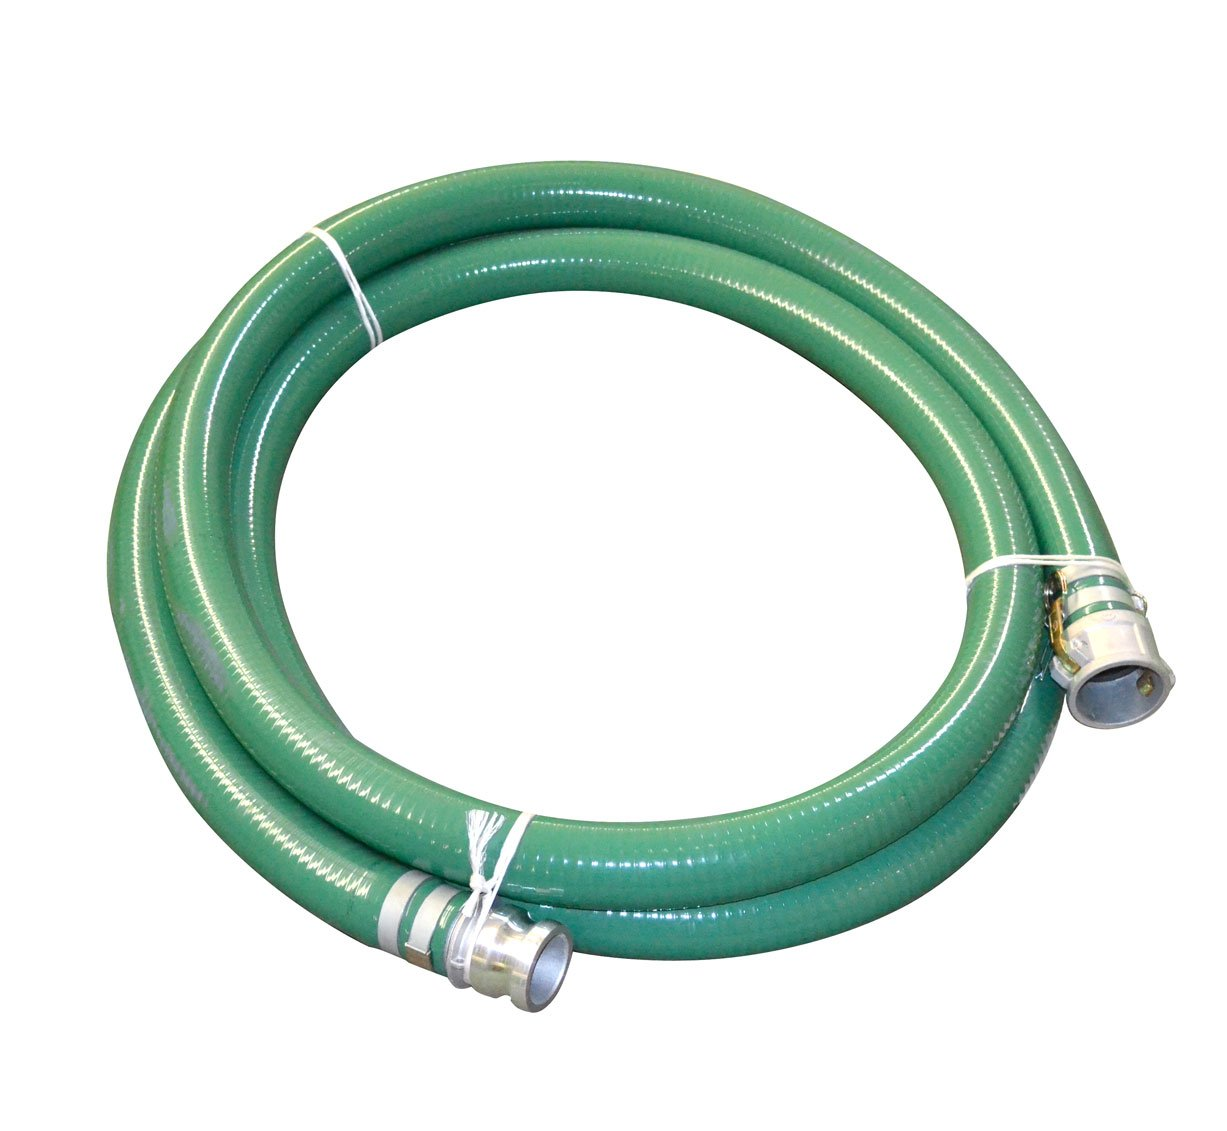 Abbott Rubber PVC Suction Hose Assembly, Green, 3'' Male X Female Cam And Groove, 40 psi Max Pressure, 20' Length, 3'' ID